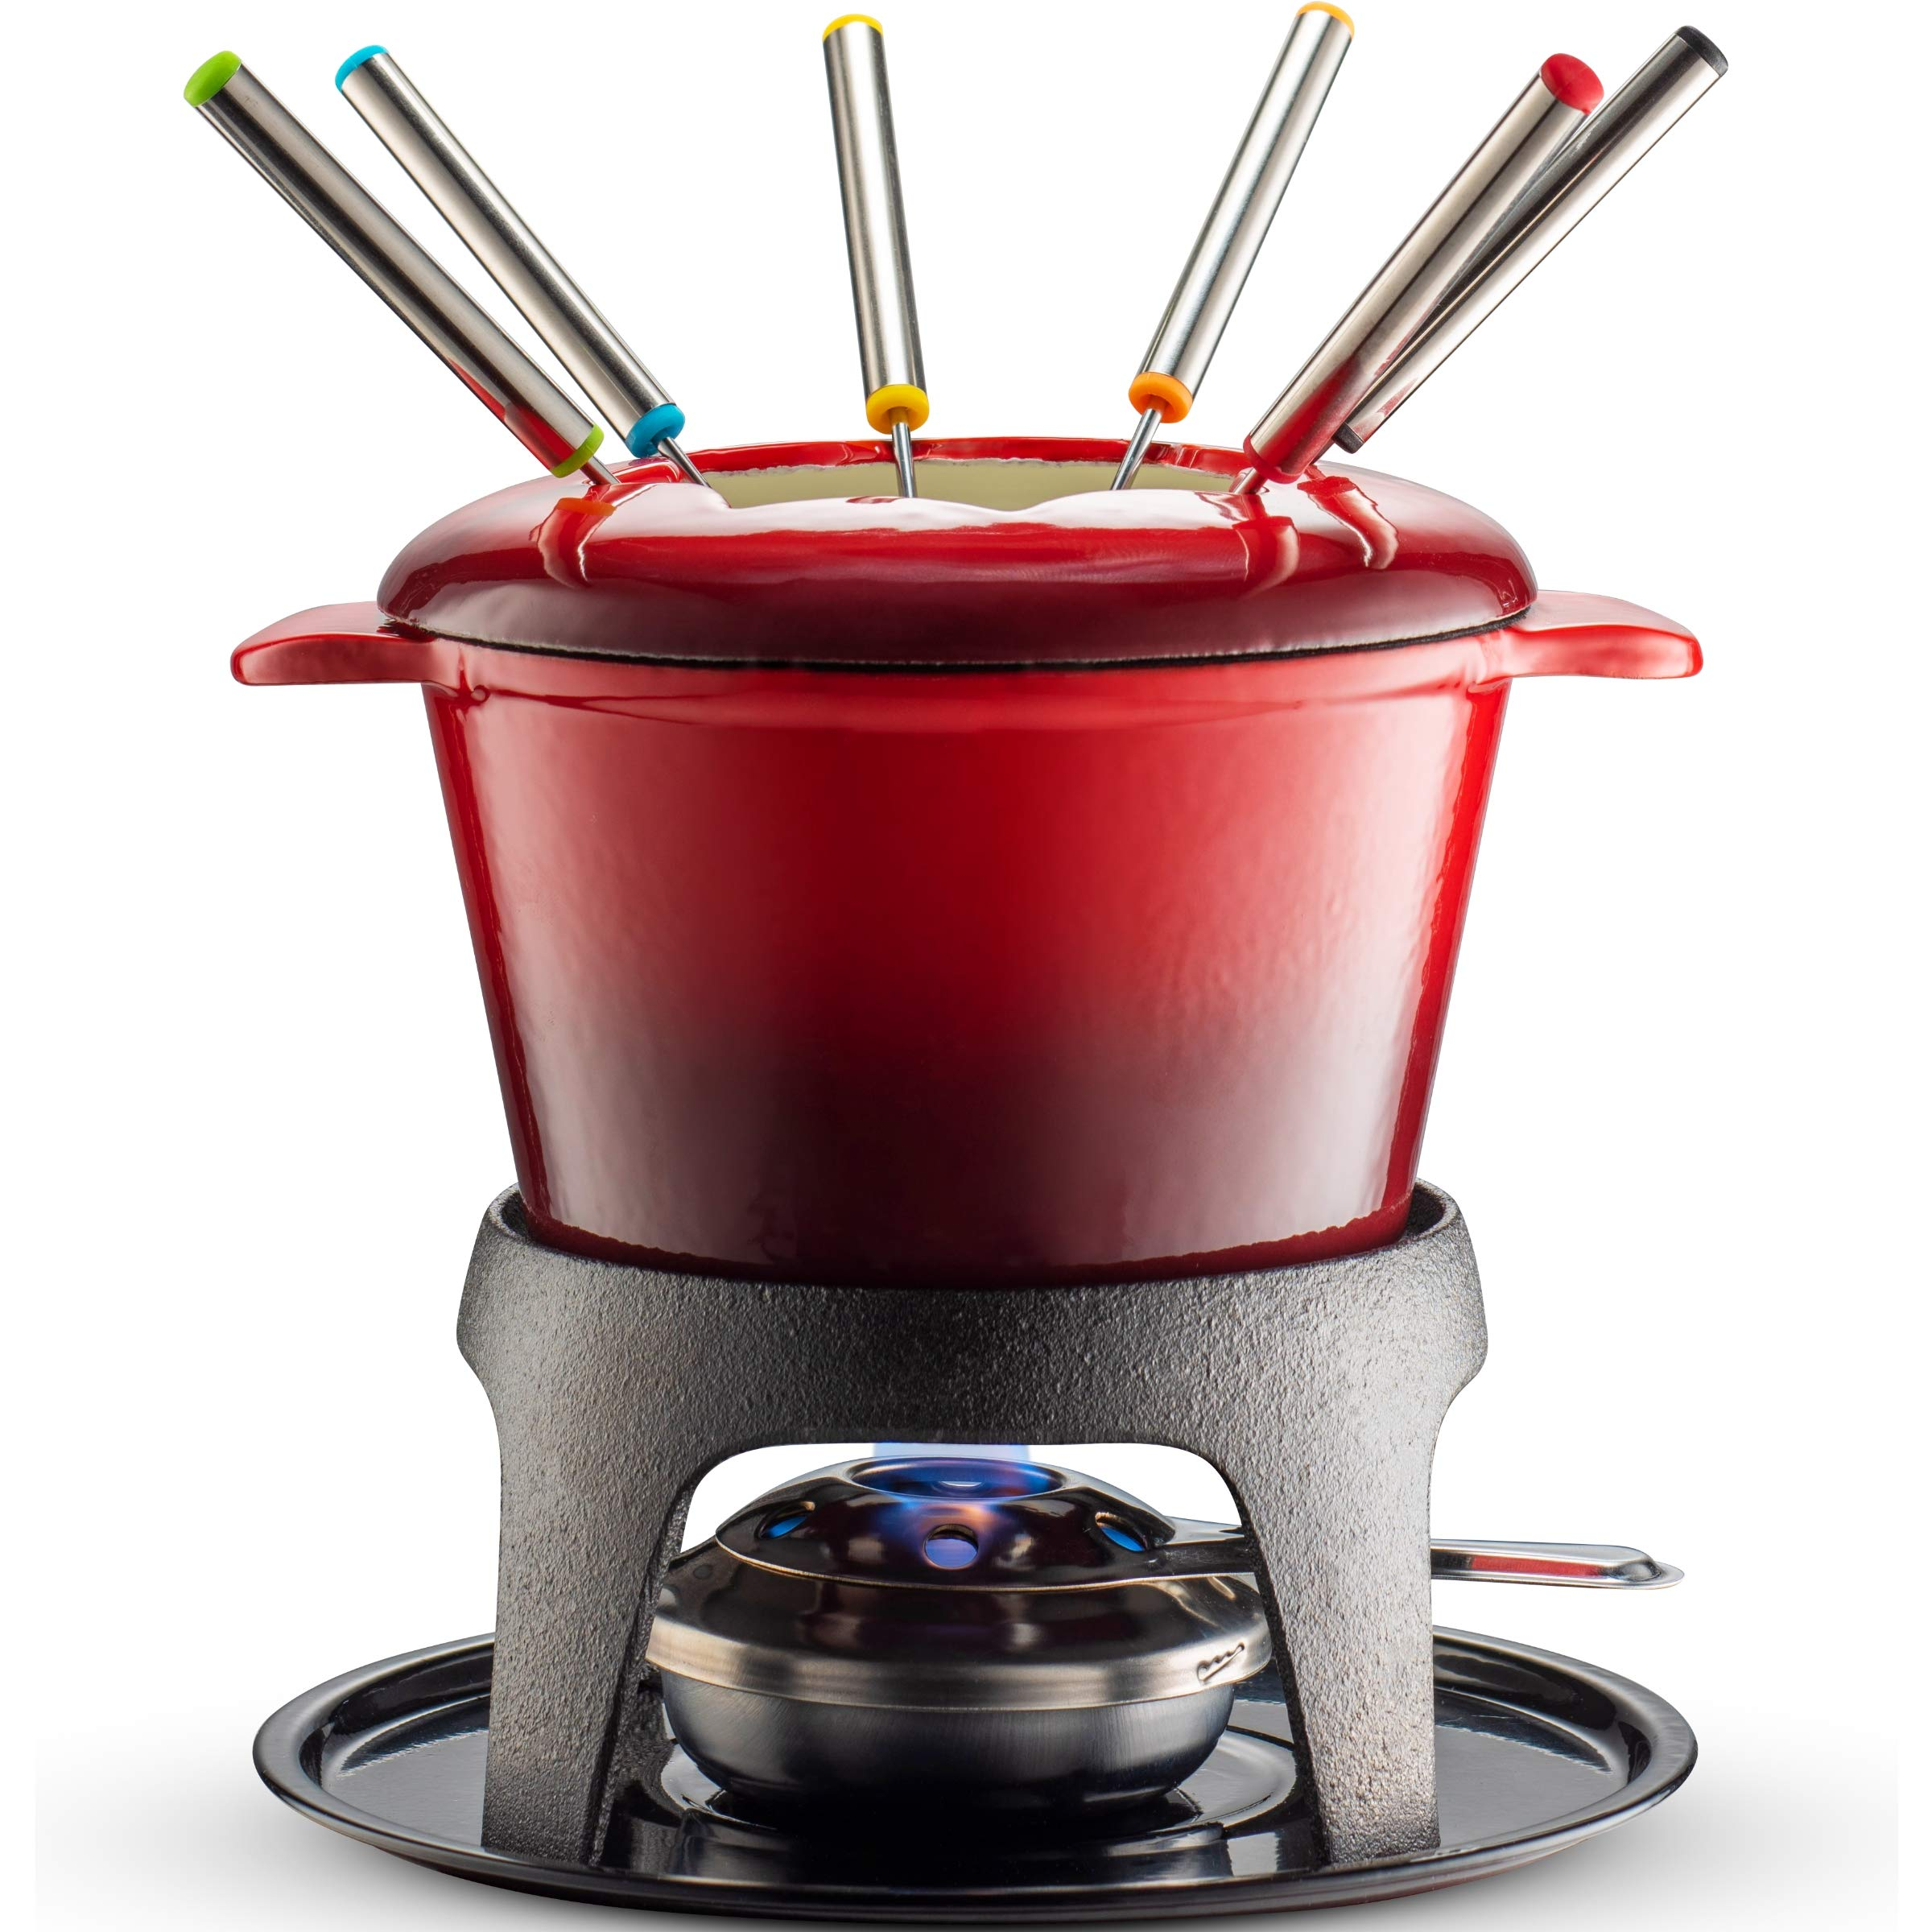 Klee 12-Piece Cast Iron Fondue Set with Red Fondue Pot, 6 Fondue Forks, Fondue Burner and Fondue Pot Base, 44 oz by KLEE UTENSILS